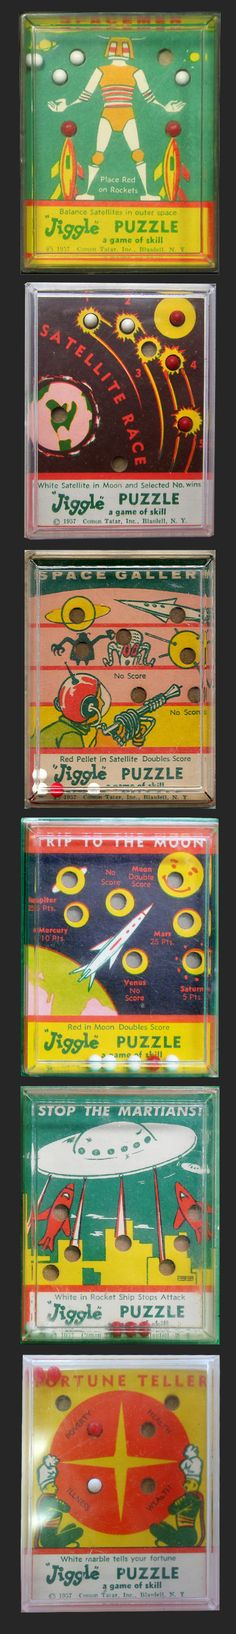 Space Jiggle Puzzles Set by Comom Tatar, 1950's (click to EXPAND pin)